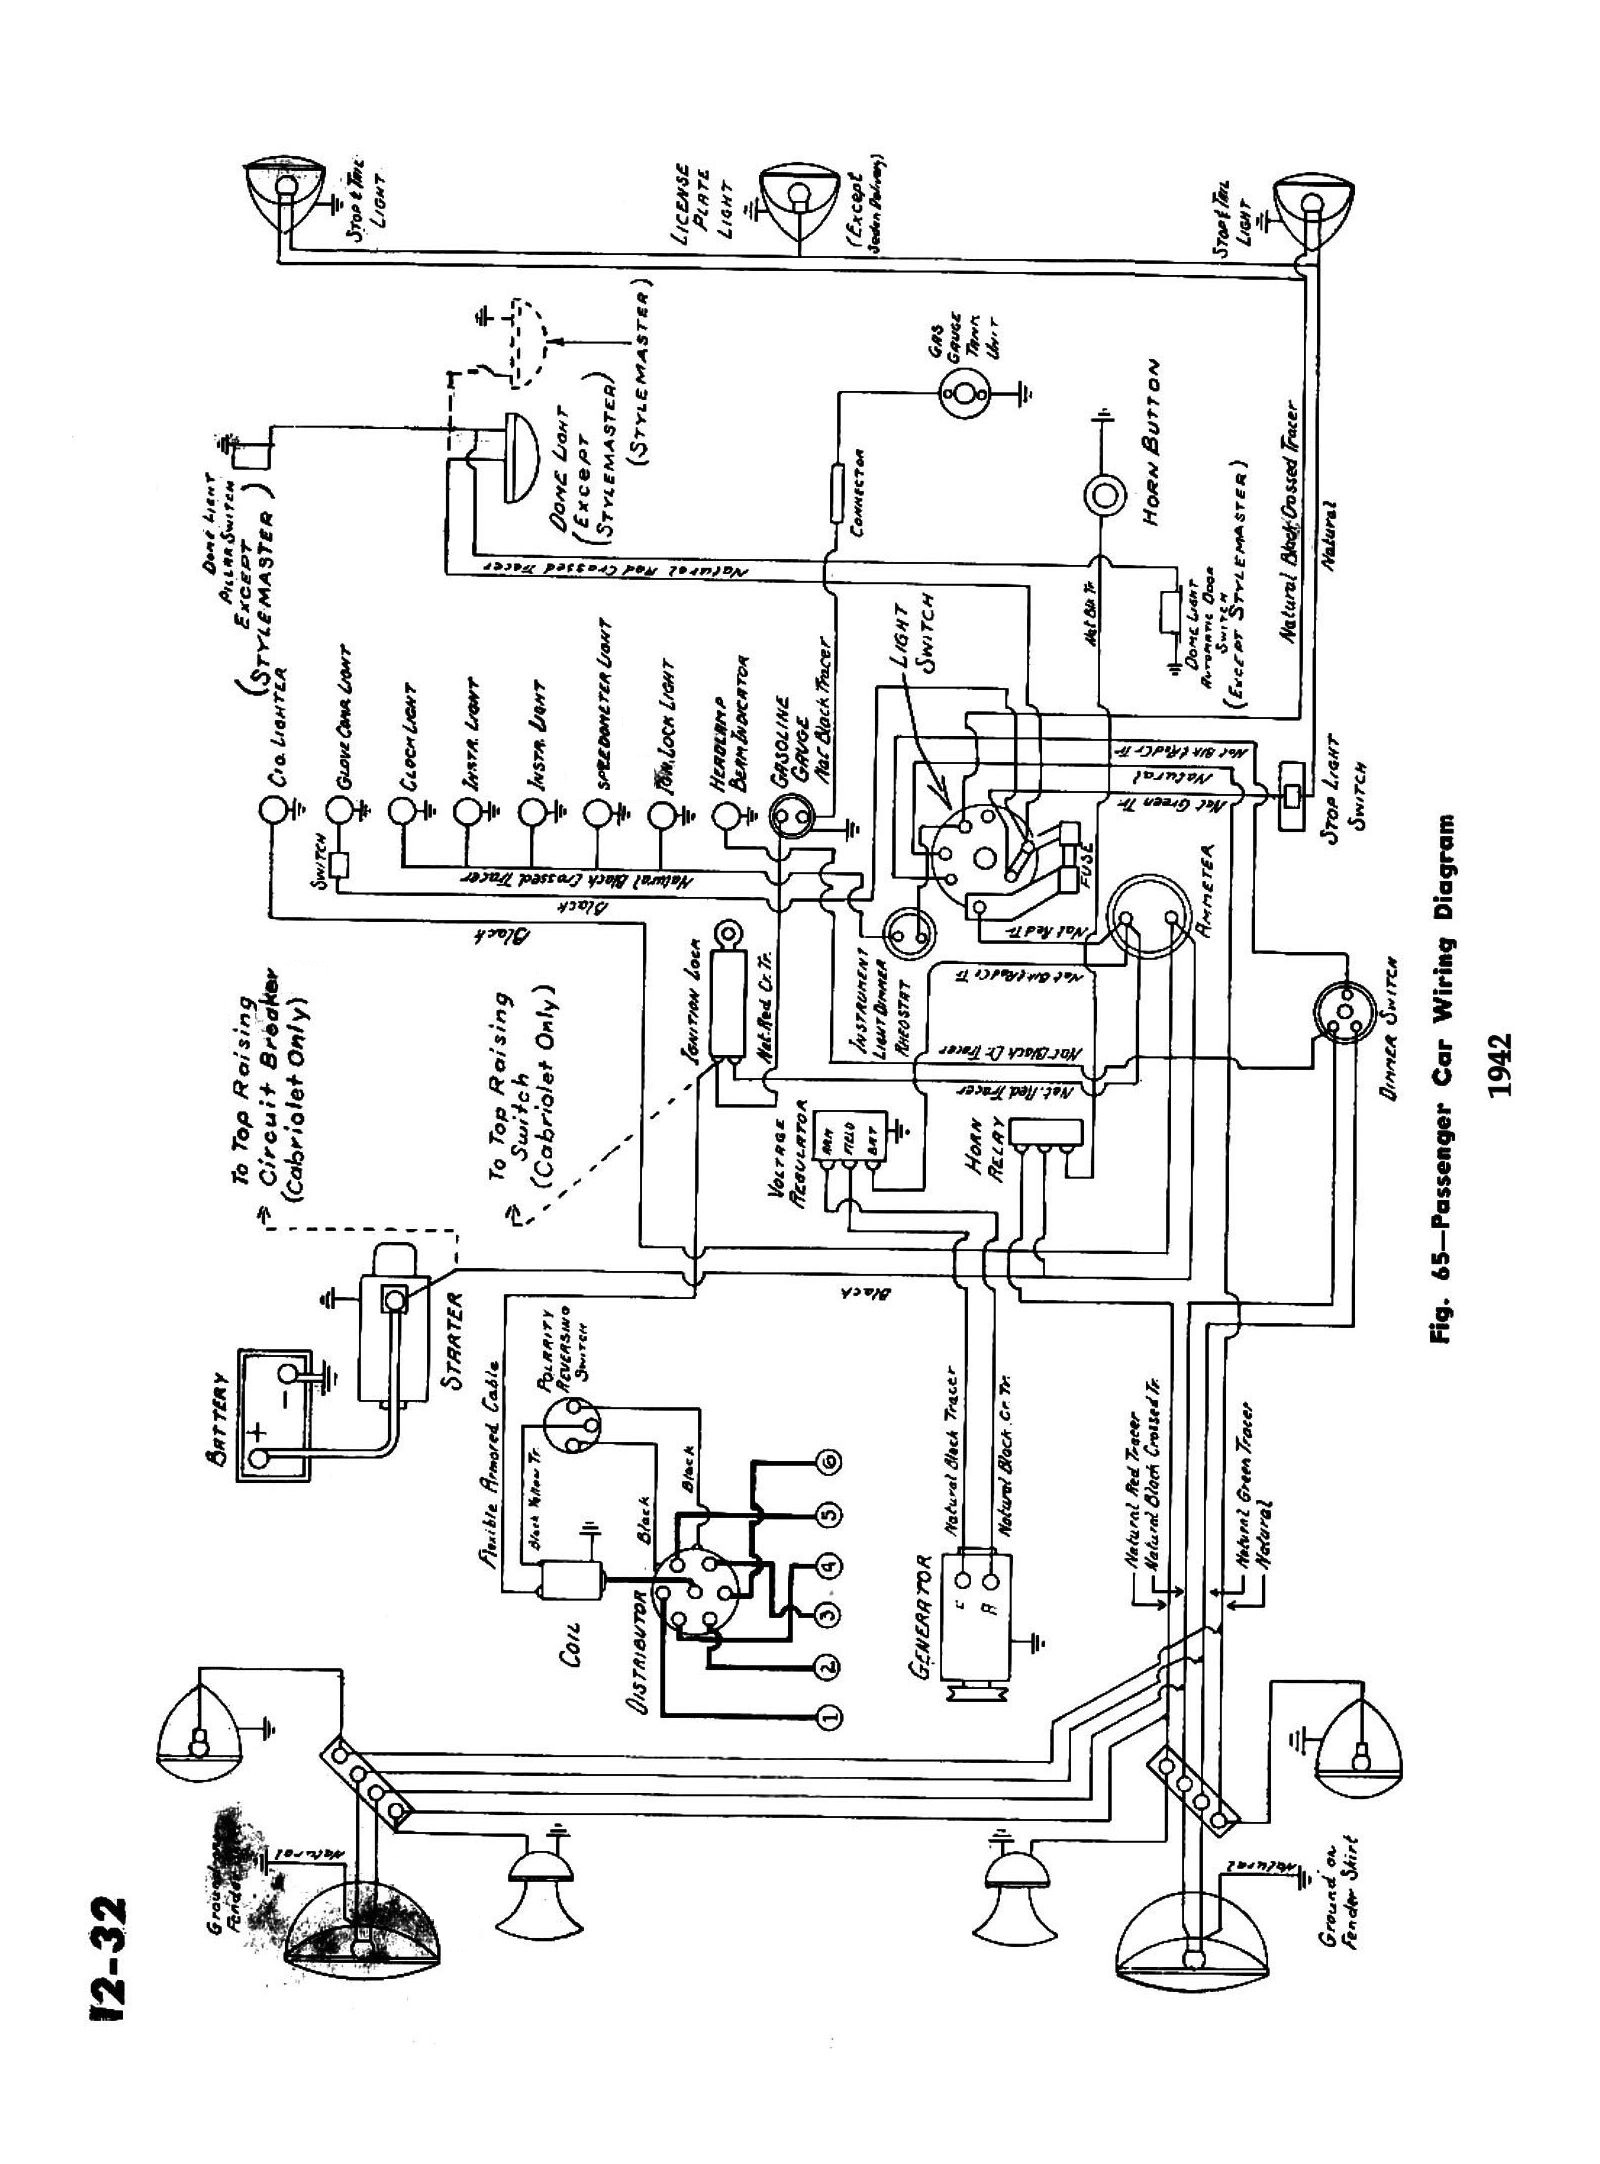 1960 Dodge D100 Wiring Harness Diagram Car Fuse Box 1970 Chevy Diagrams Rh Oldcarmanualproject Com 1968